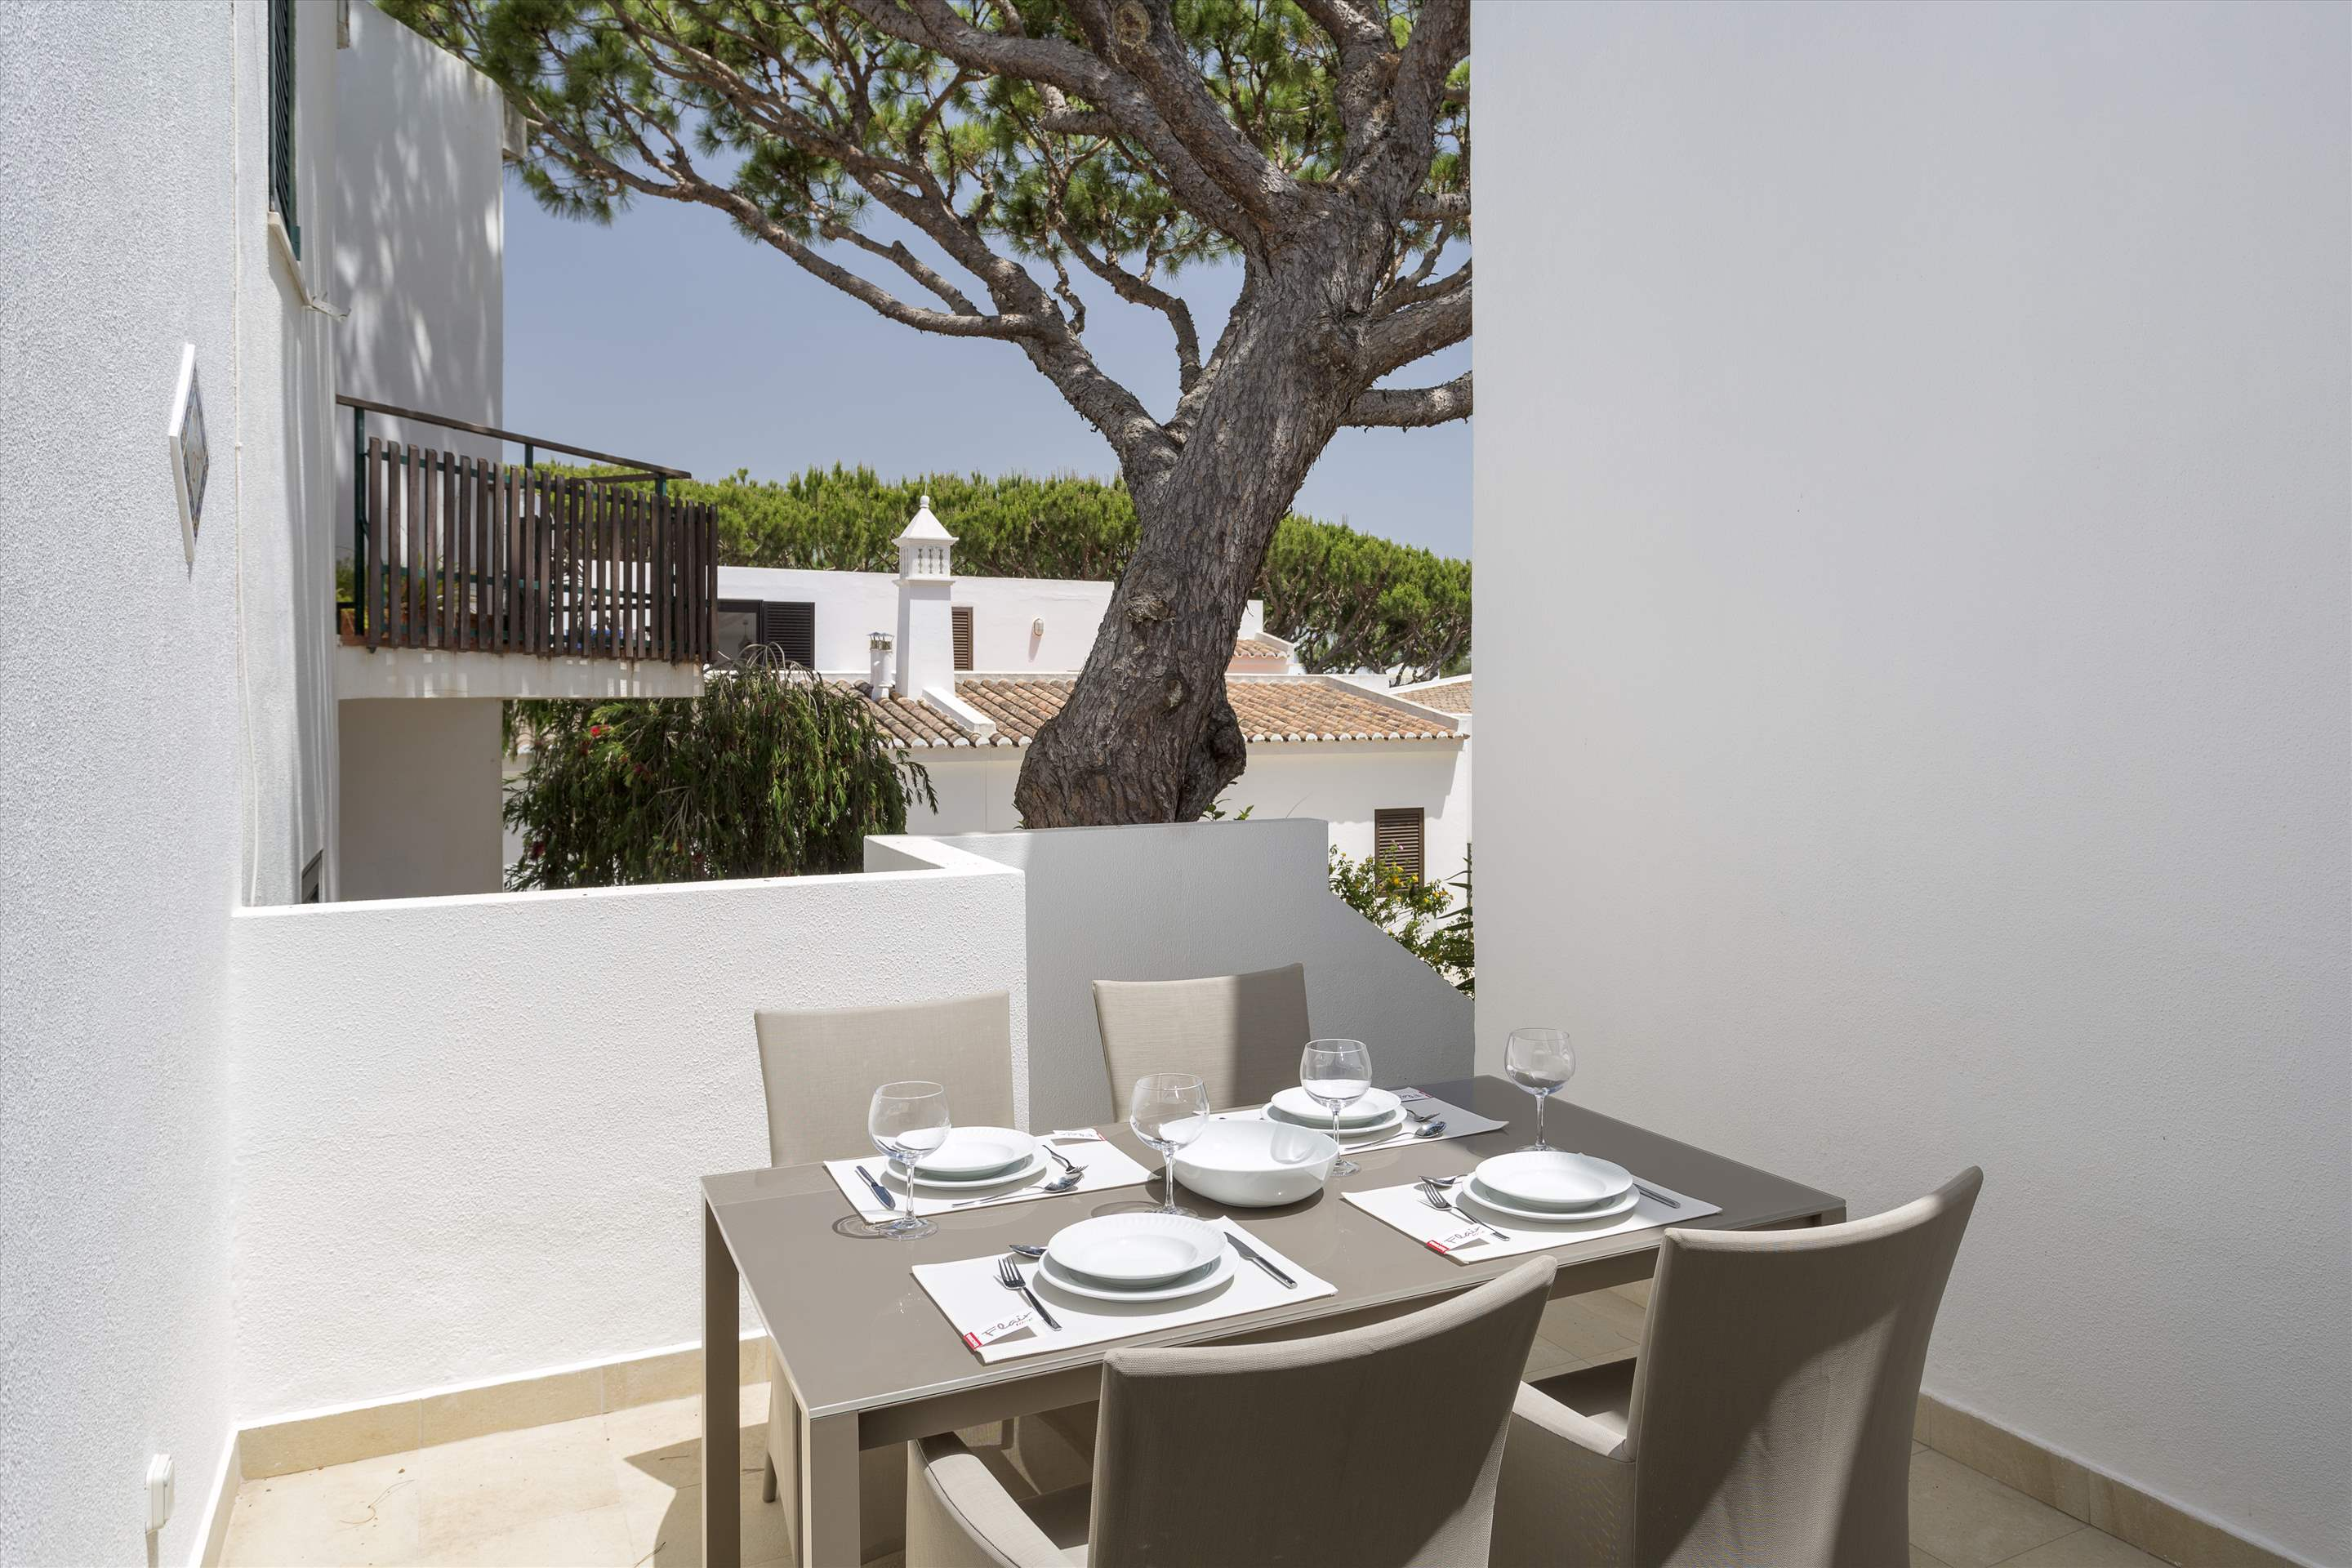 Villa Clemente, 2 bedroom villa in Vale do Lobo, Algarve Photo #8